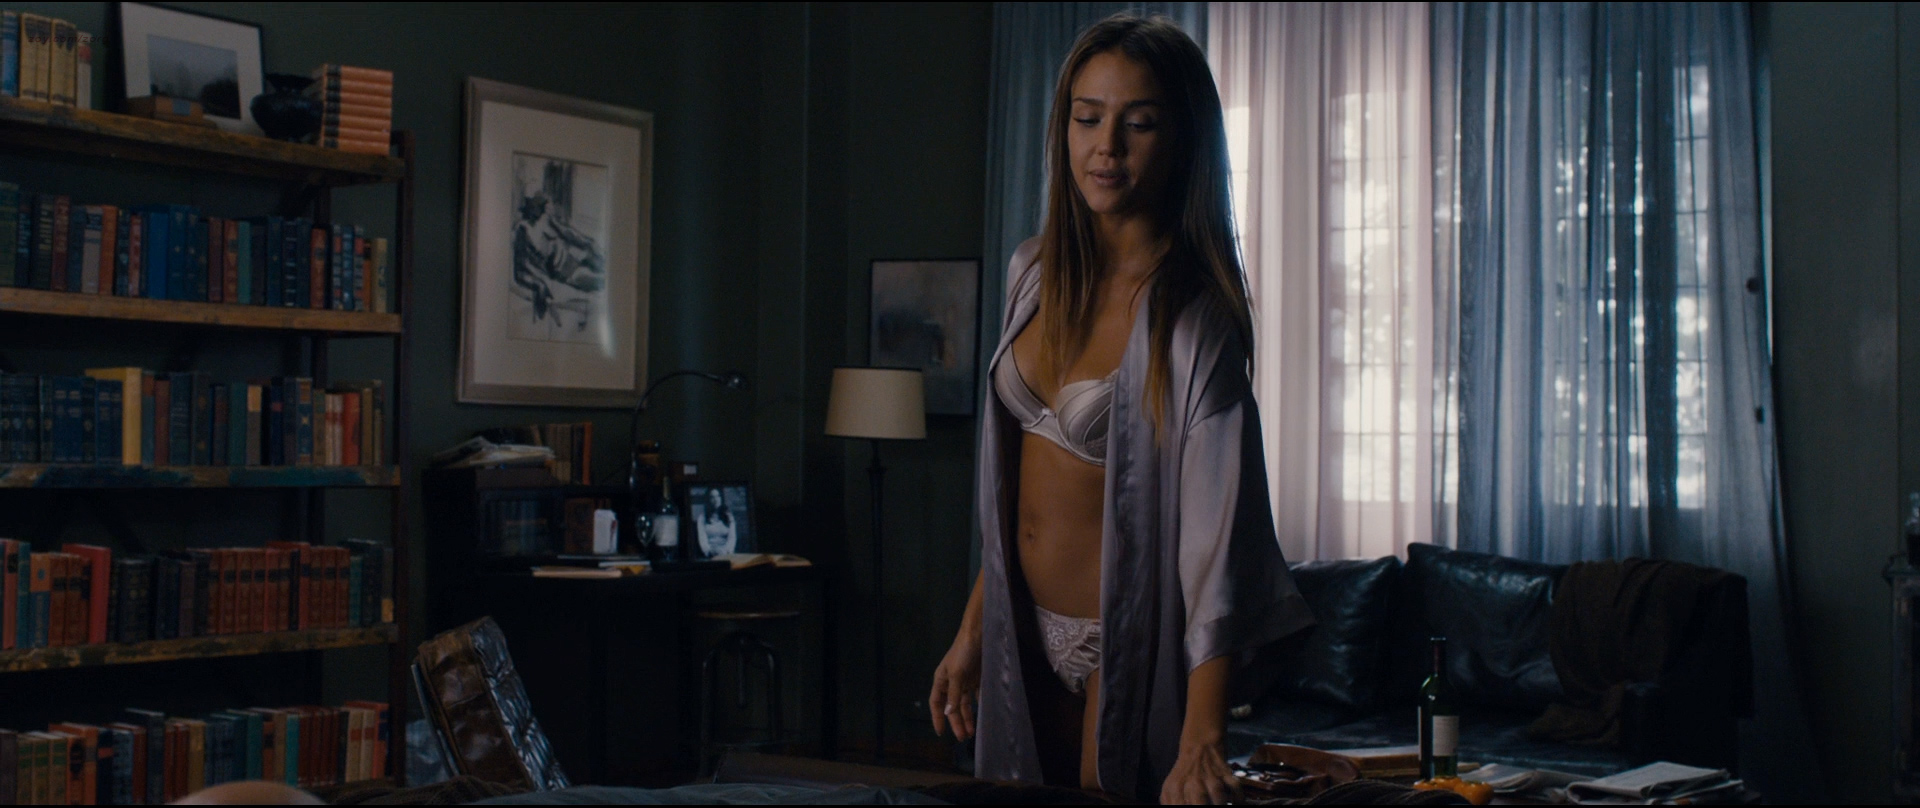 Salma Hayek nude butt Jessica Alba hot bikini and Lindsey Sporrer nude butt - Some Kind Of Beautiful (2014) hd1080p BluRay (12)